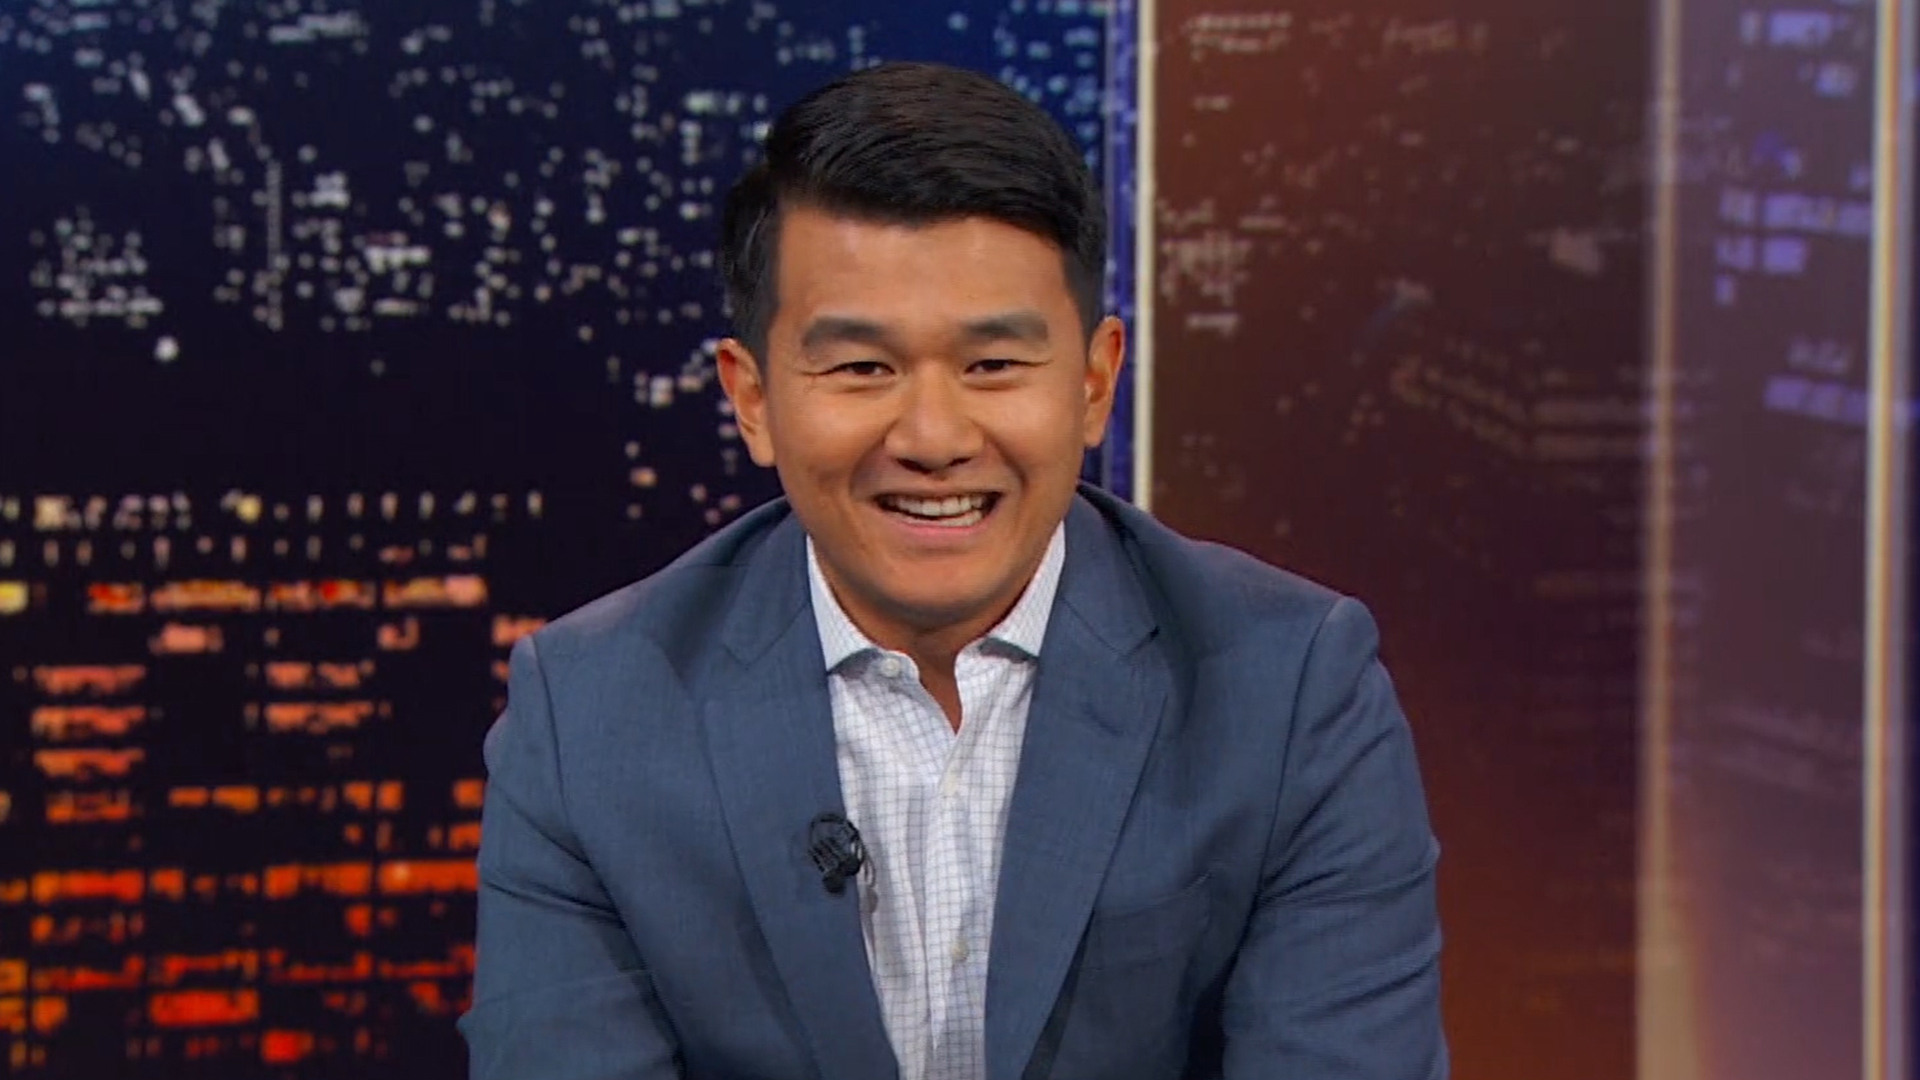 Your Moment of Them: The Best of Ronny Chieng Vol. 2